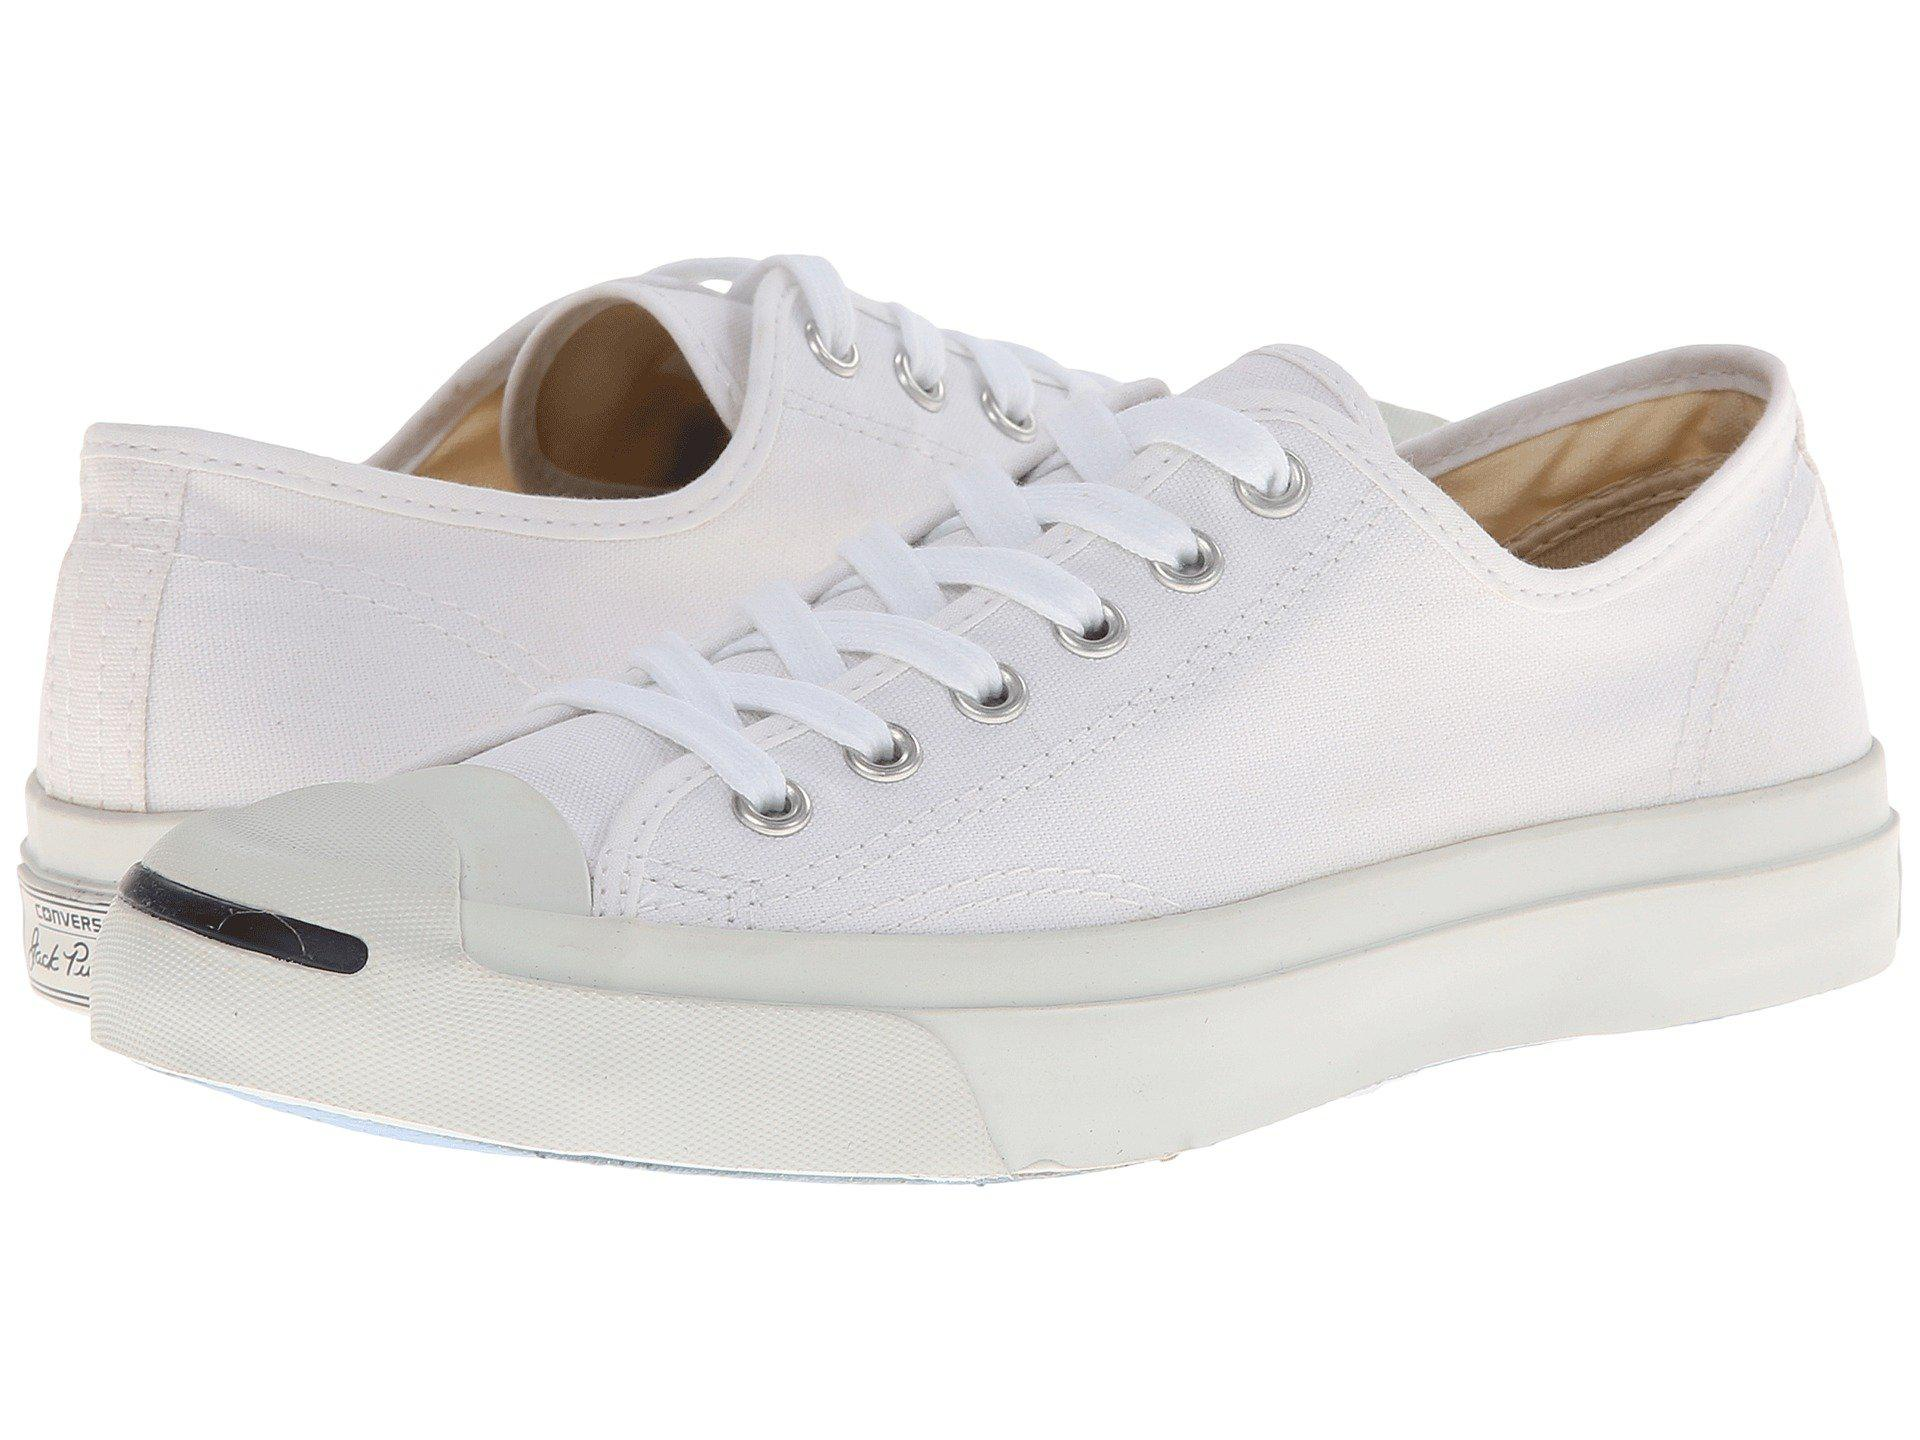 3a668d52291d24 ... coupon code for converse. womens jack purcellr 10bd5 f006b